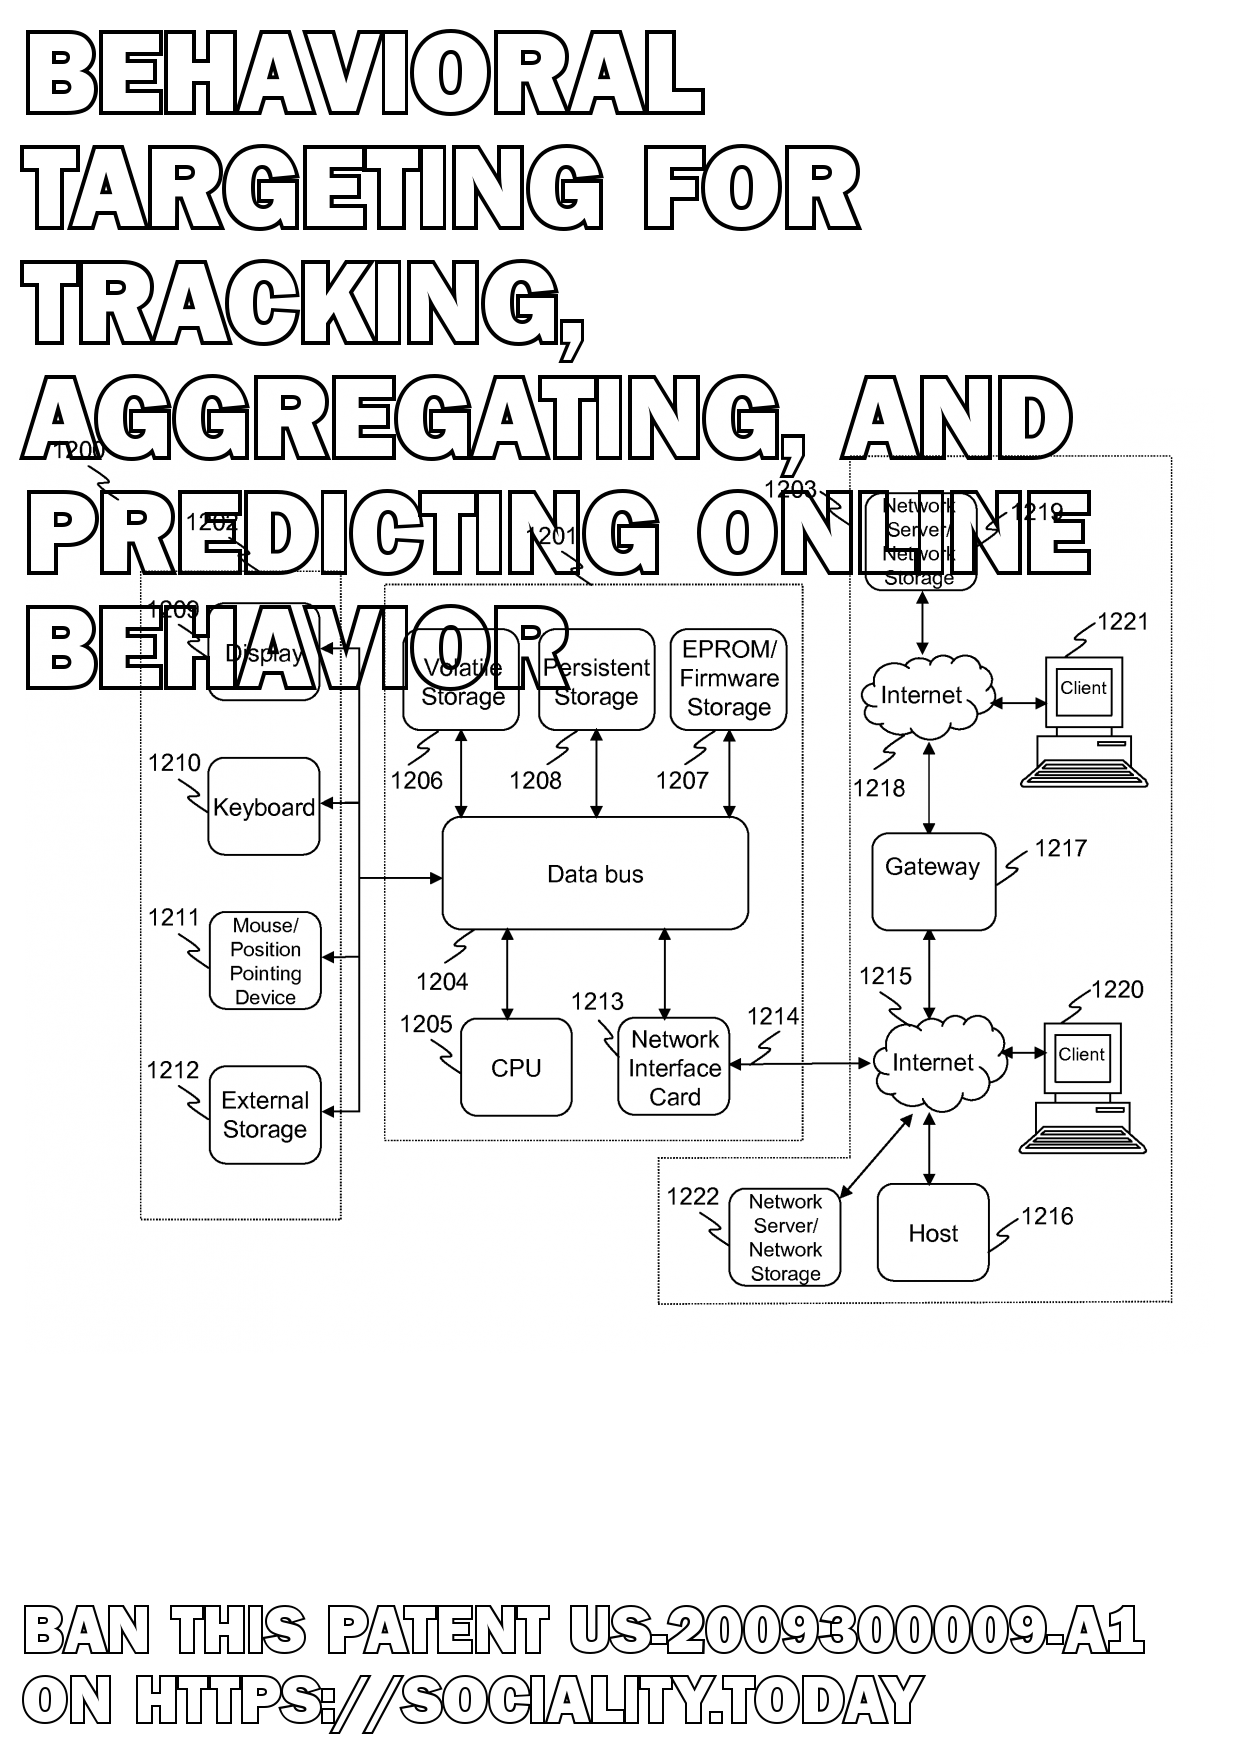 Behavioral Targeting For Tracking, Aggregating, And Predicting Online Behavior  - US-2009300009-A1